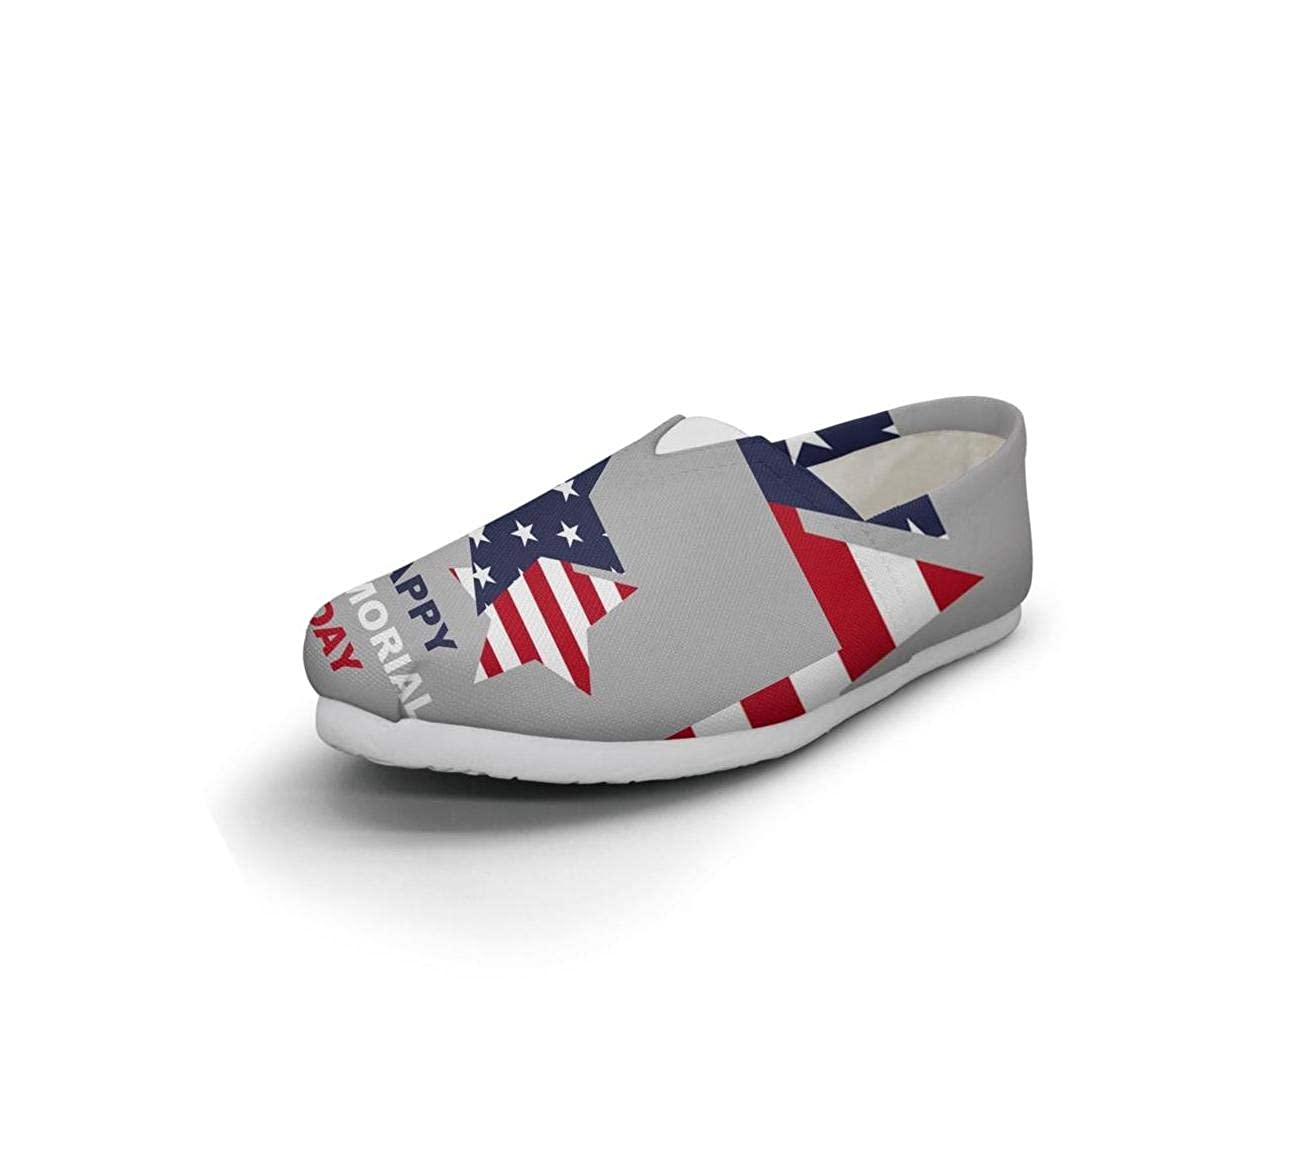 nkfbx Memorial Day American Flag Casual Flat Canva Shoes for Women Ballet